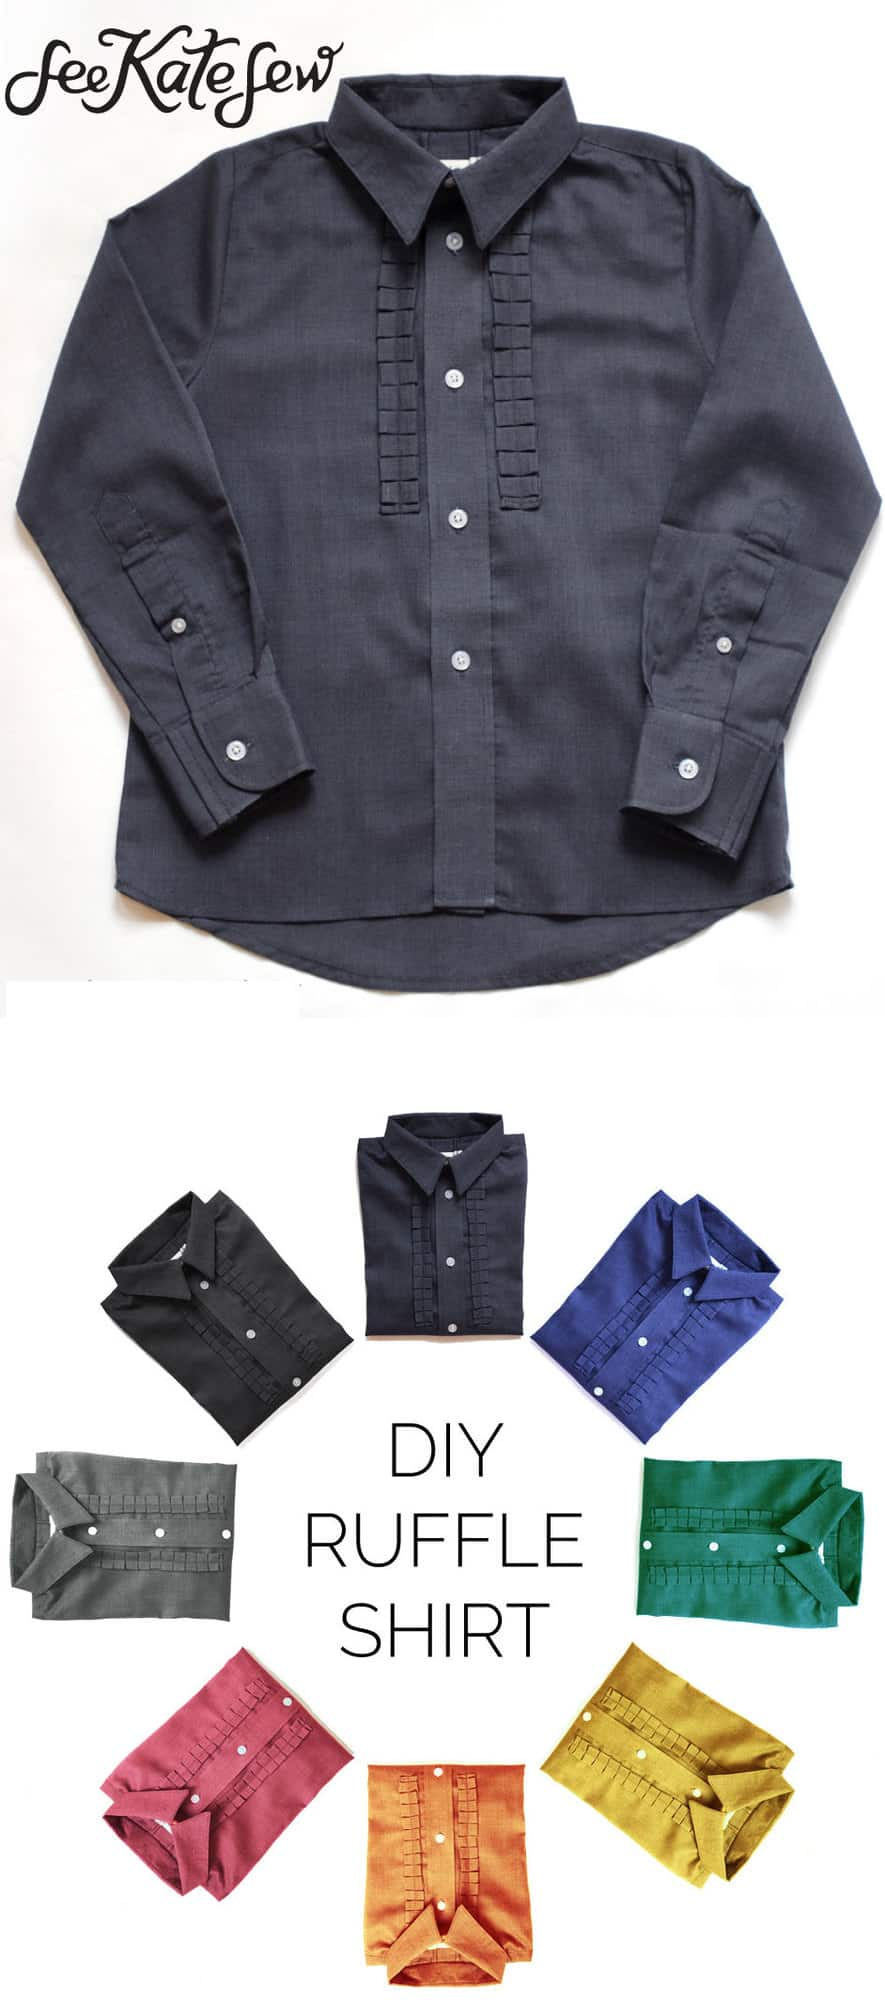 DIY Boy Ruffle Shirt|See Kate Sew